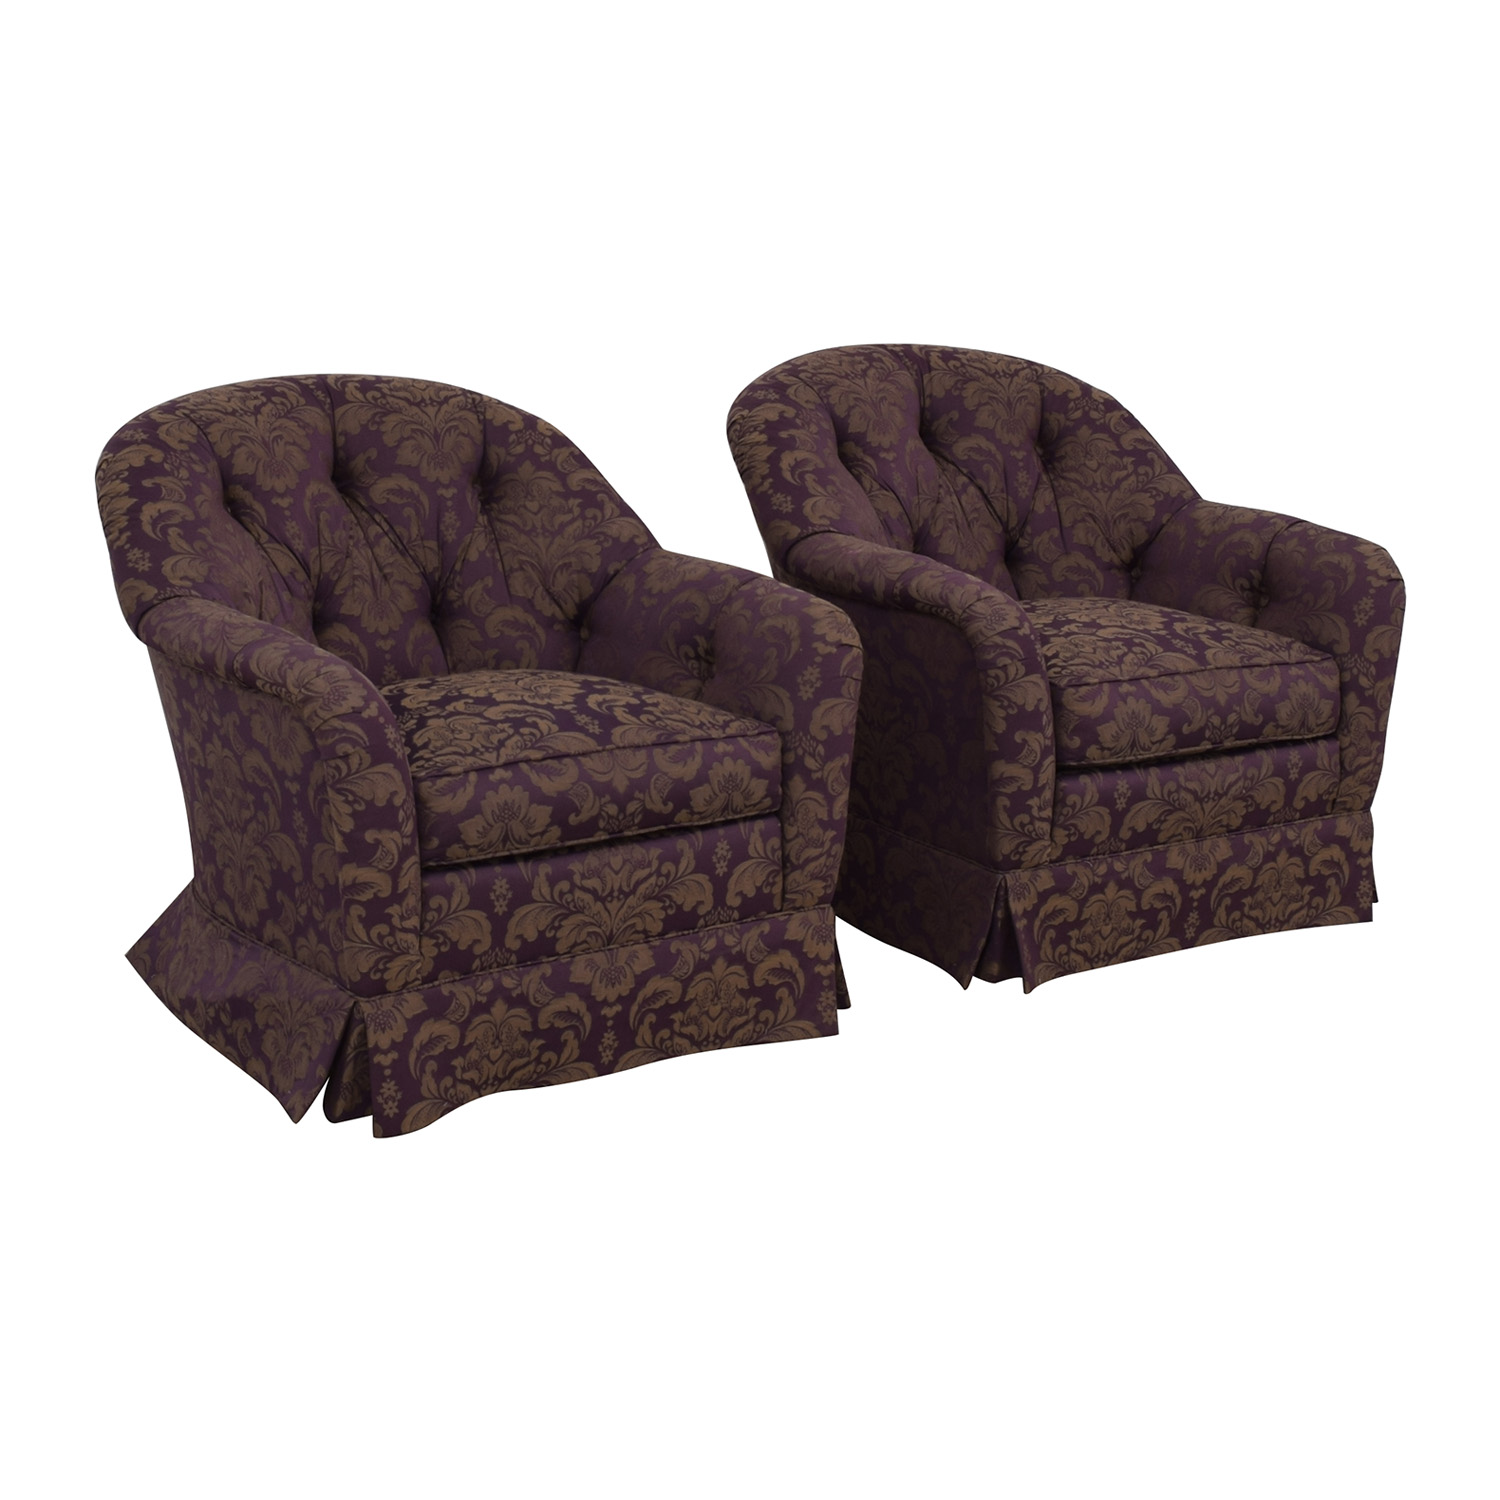 Patterned Swivel Chairs for sale